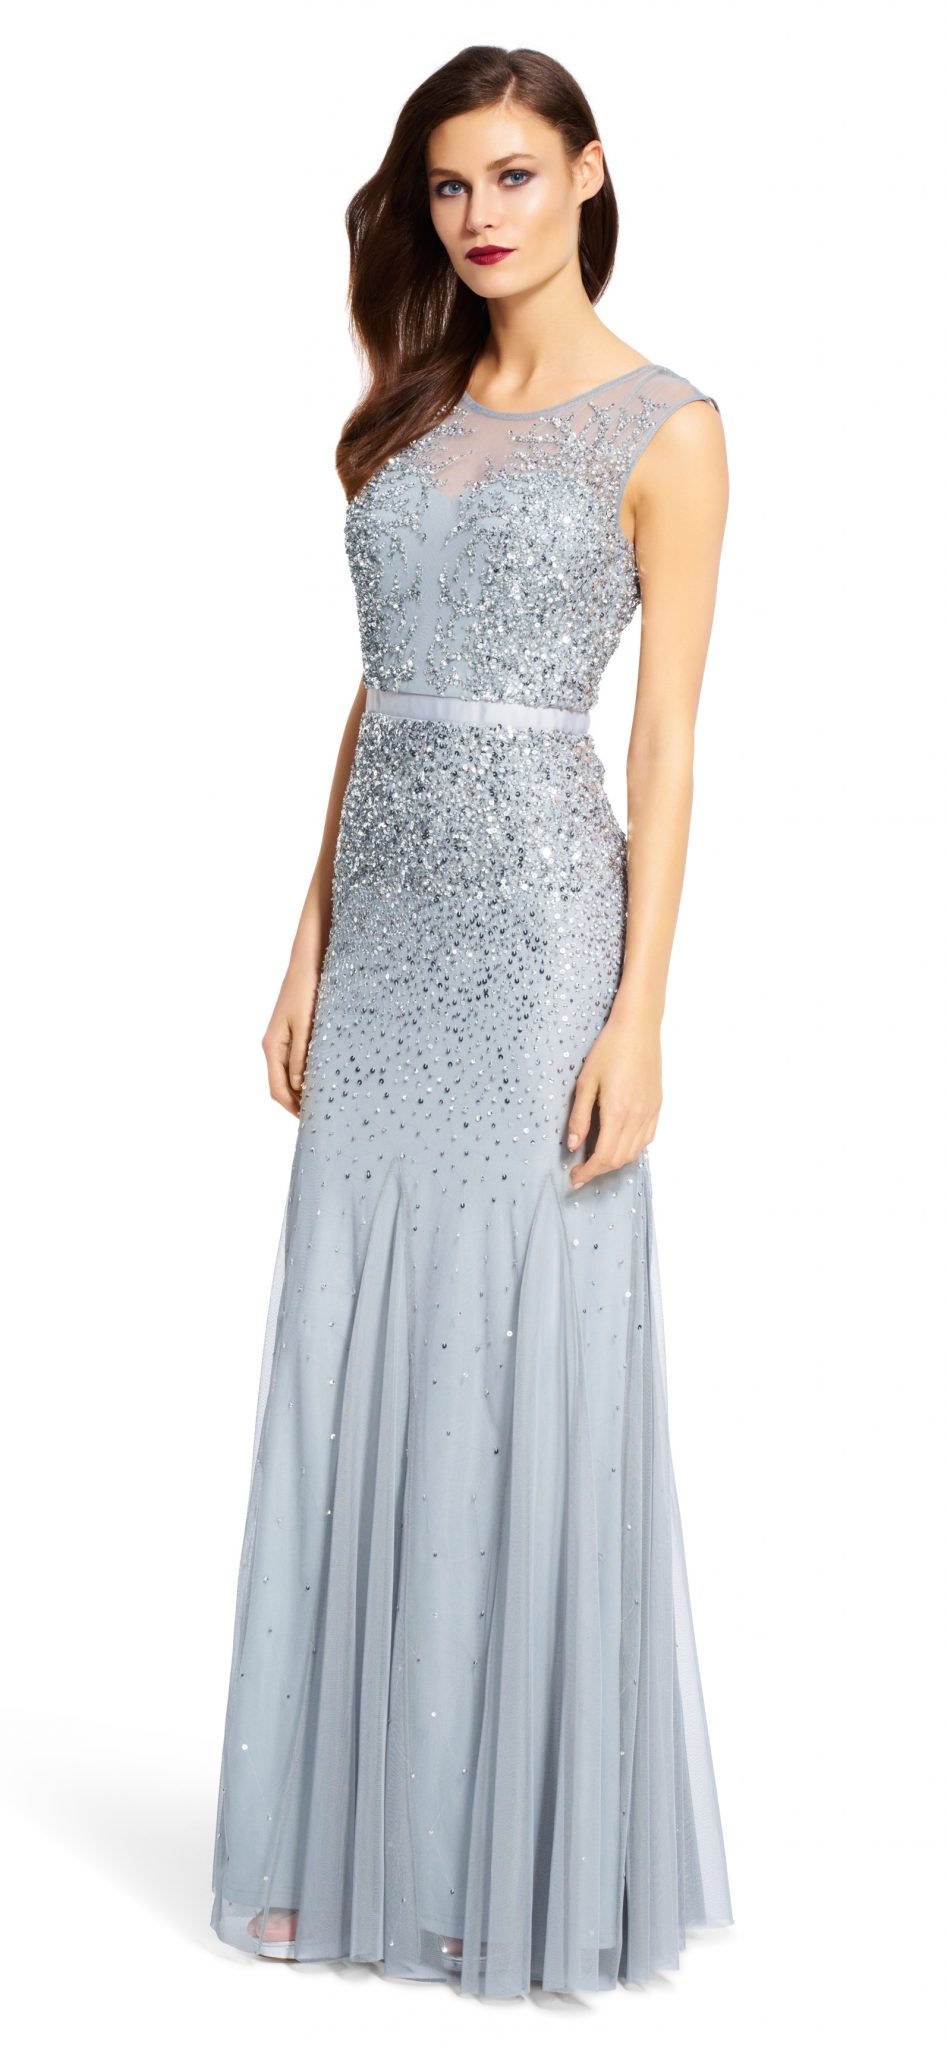 10 Adrianna Papell Gowns That Work For Your Second Wedding | Wedding ...